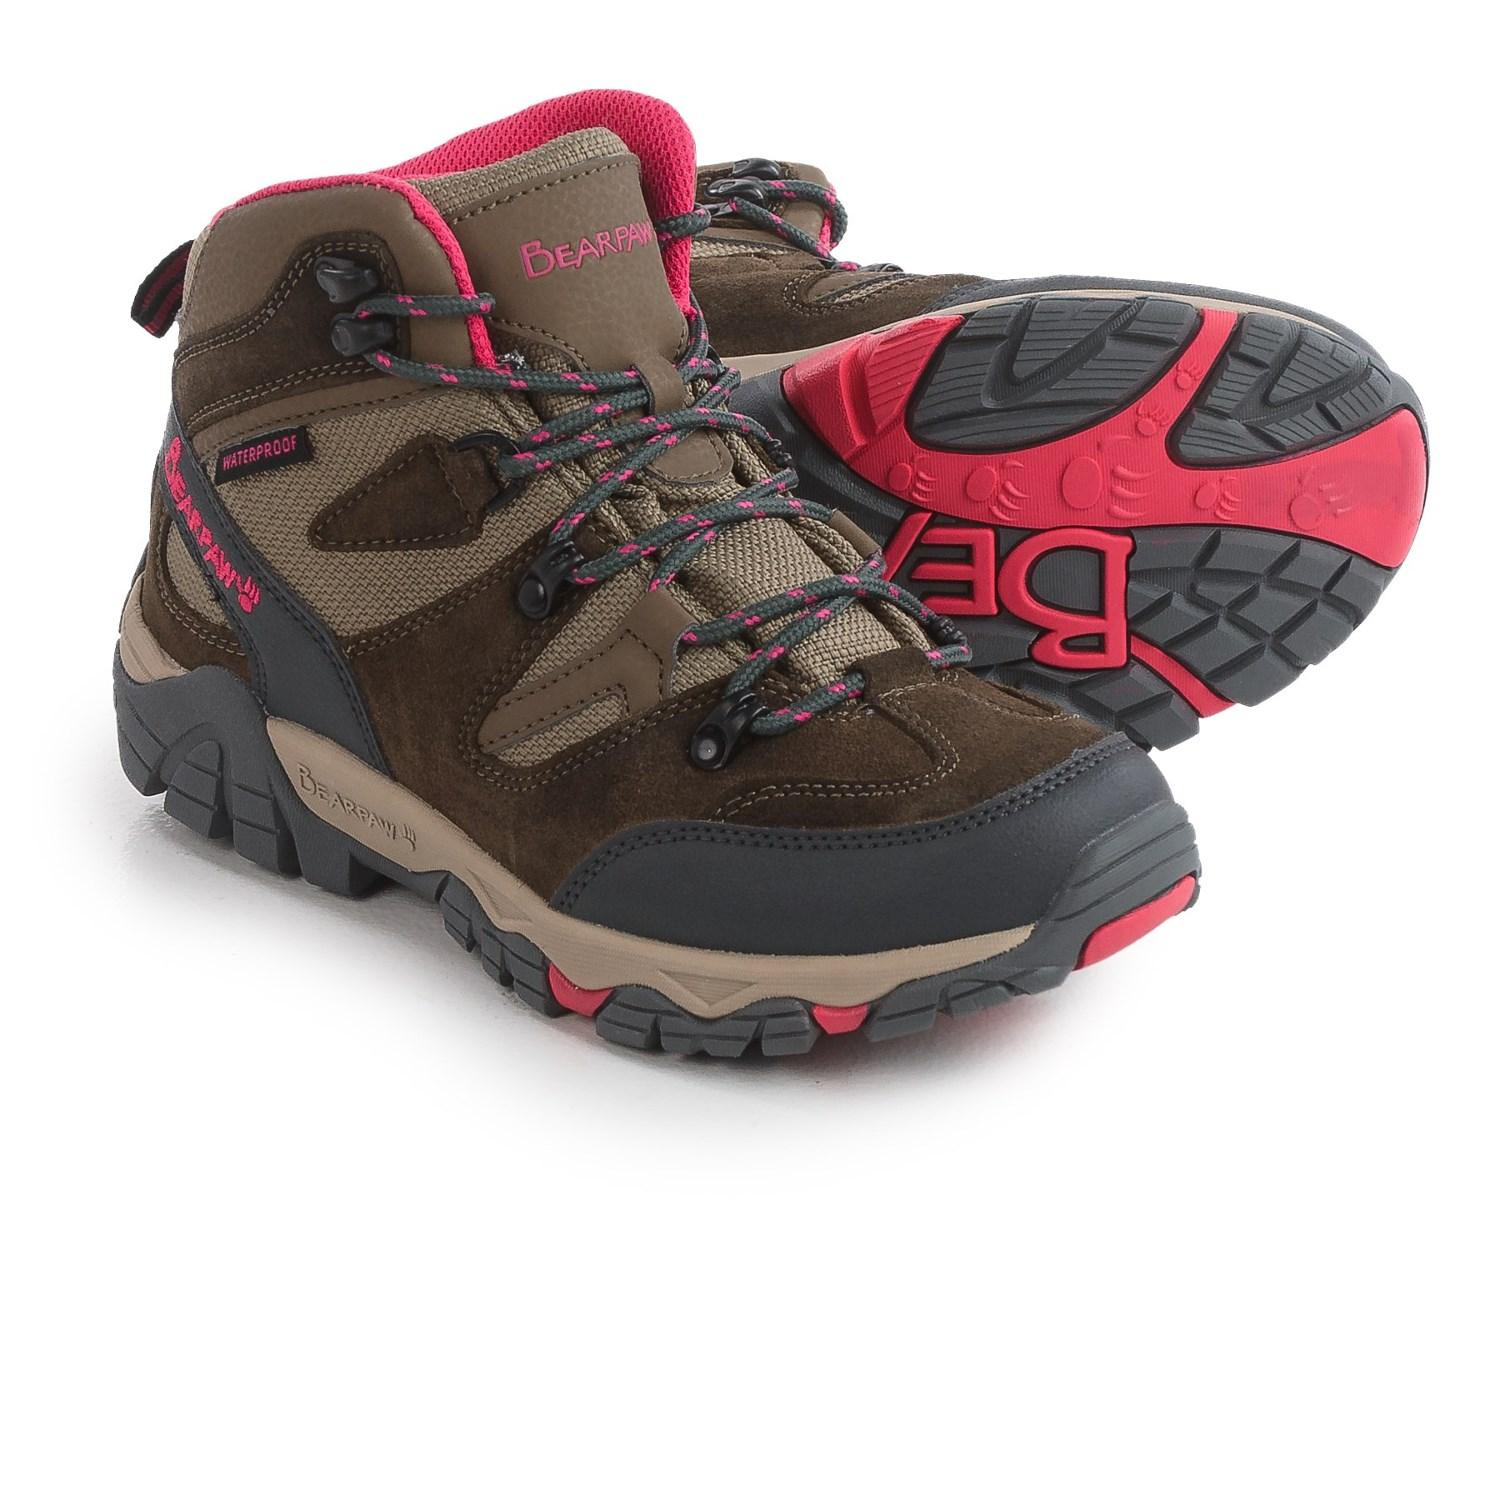 BEARPAW Synthetic Corsica Hiking Boots